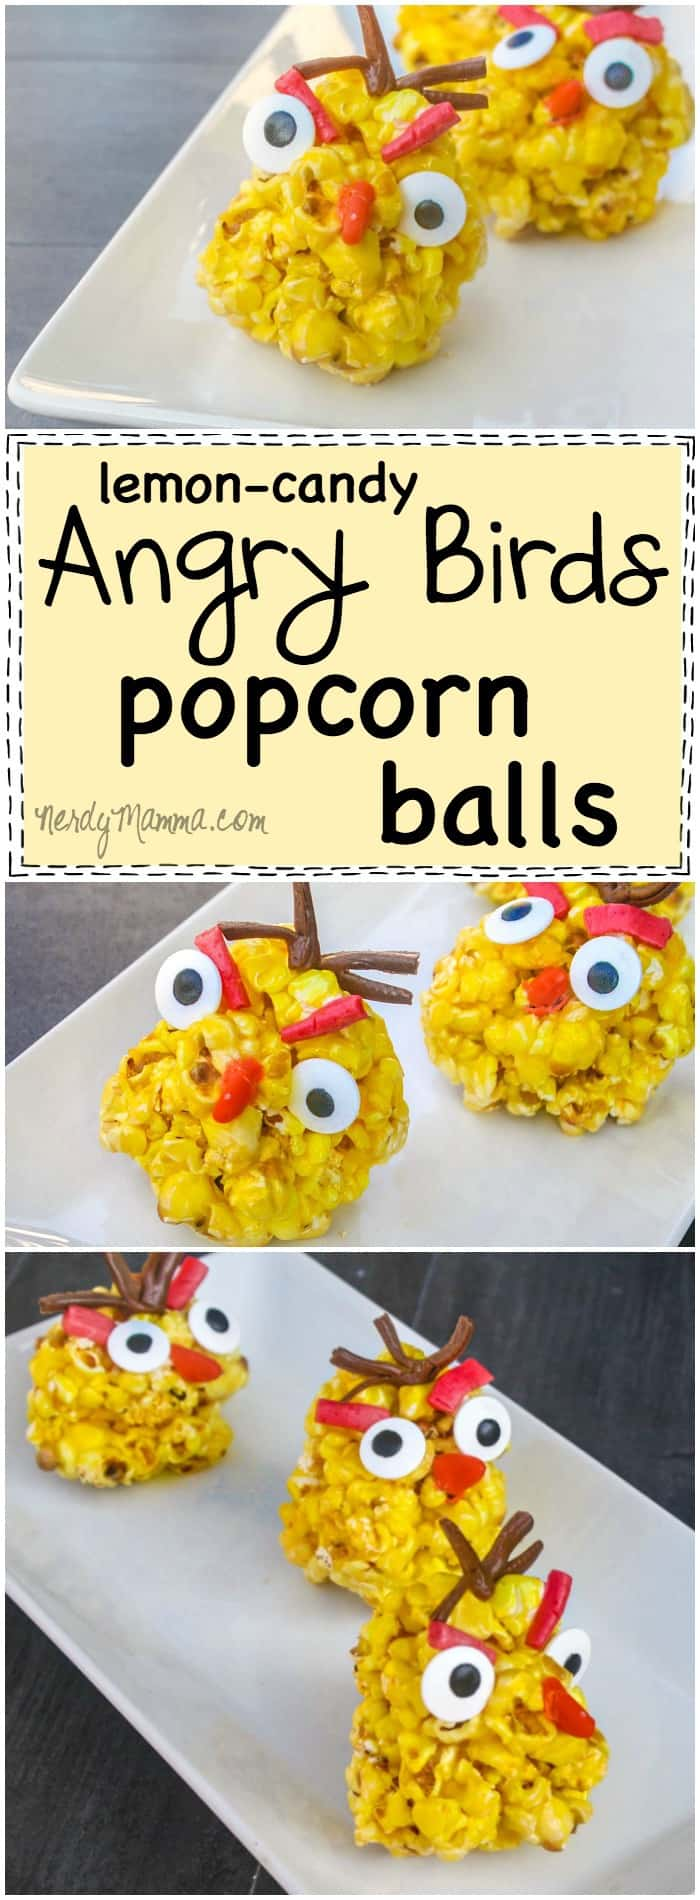 Oh, my yum! This recipe for lemon candy-flavored popcorn balls! Sounds so yummy. And that they're shaped like Angry Birds! Cutest. Snack. Ever. LOL!